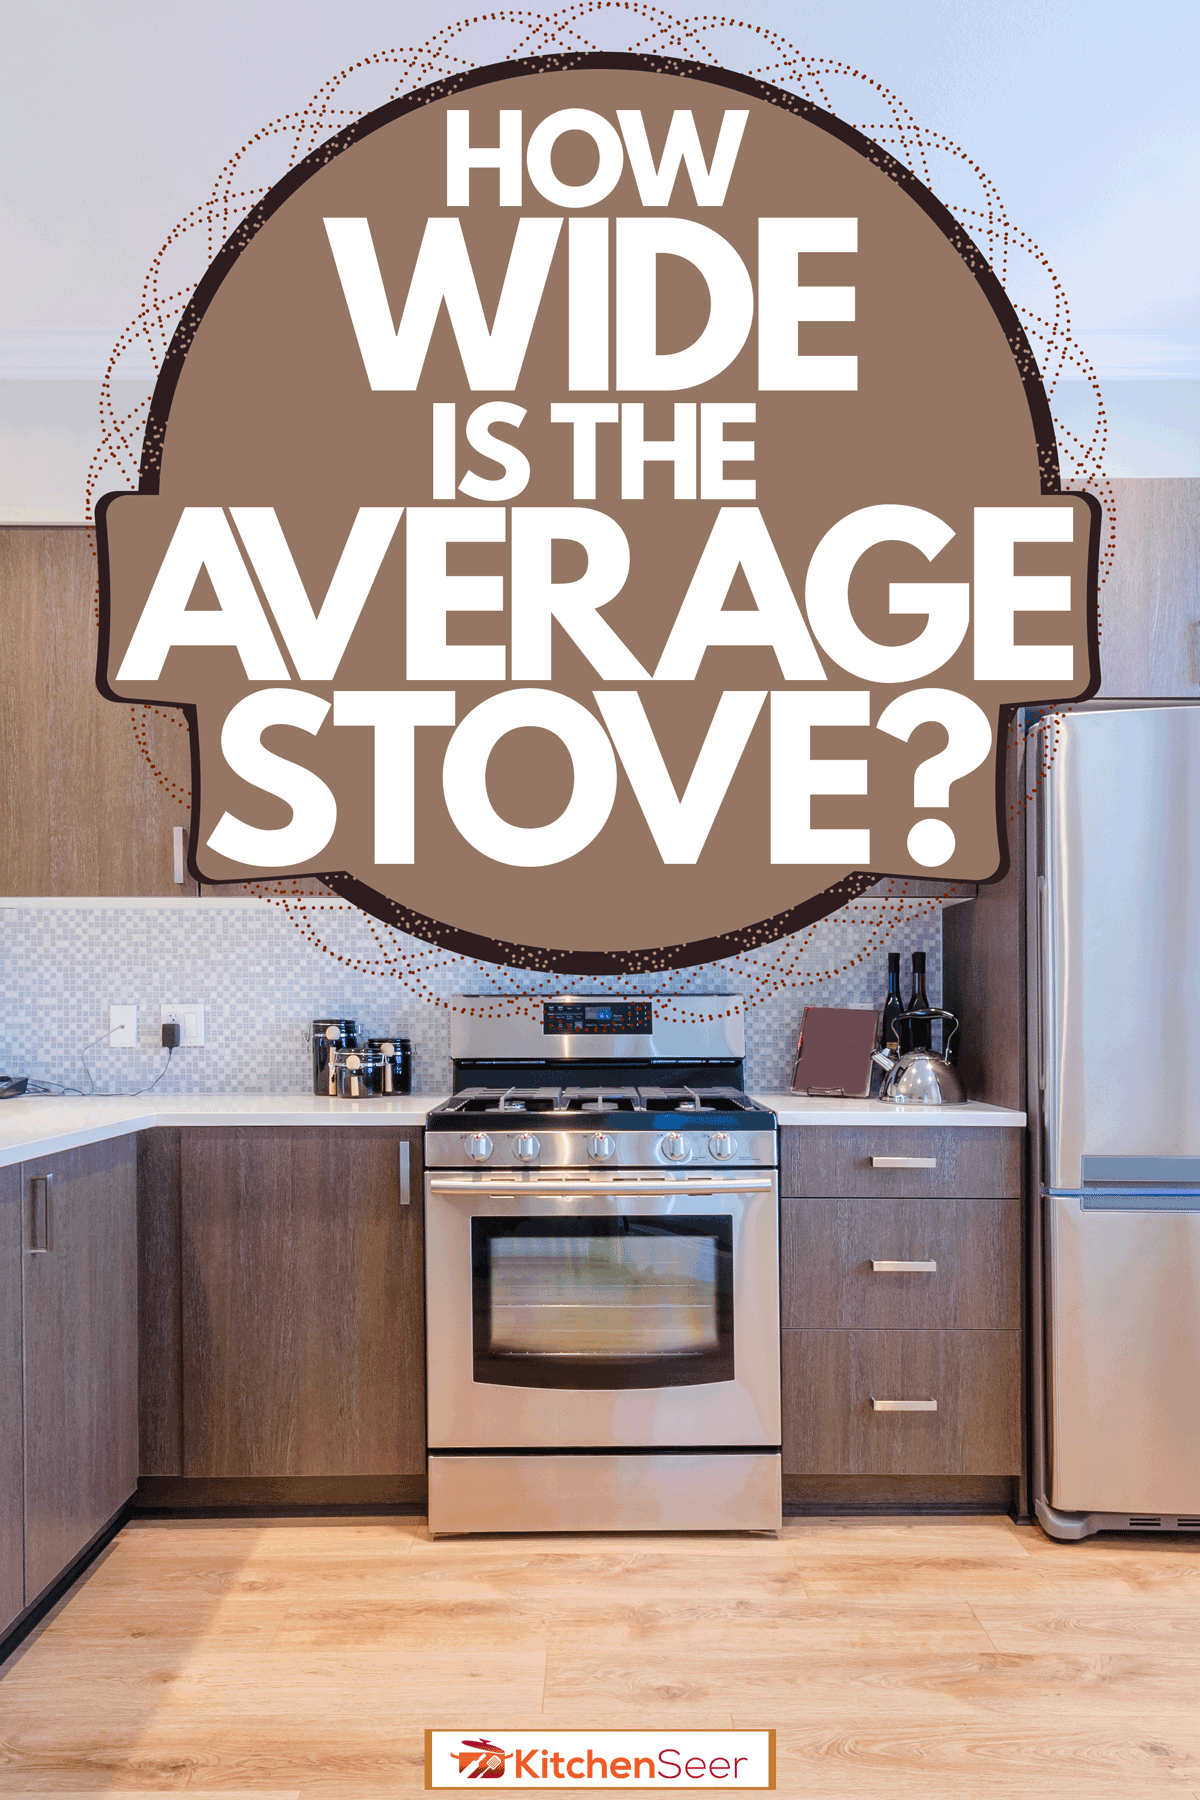 Interior of a modern kitchen with wooden paneled cabinets, a kitchen stove with an overhanging oven, and a large fridge on the side, How Wide Is The Average Stove?